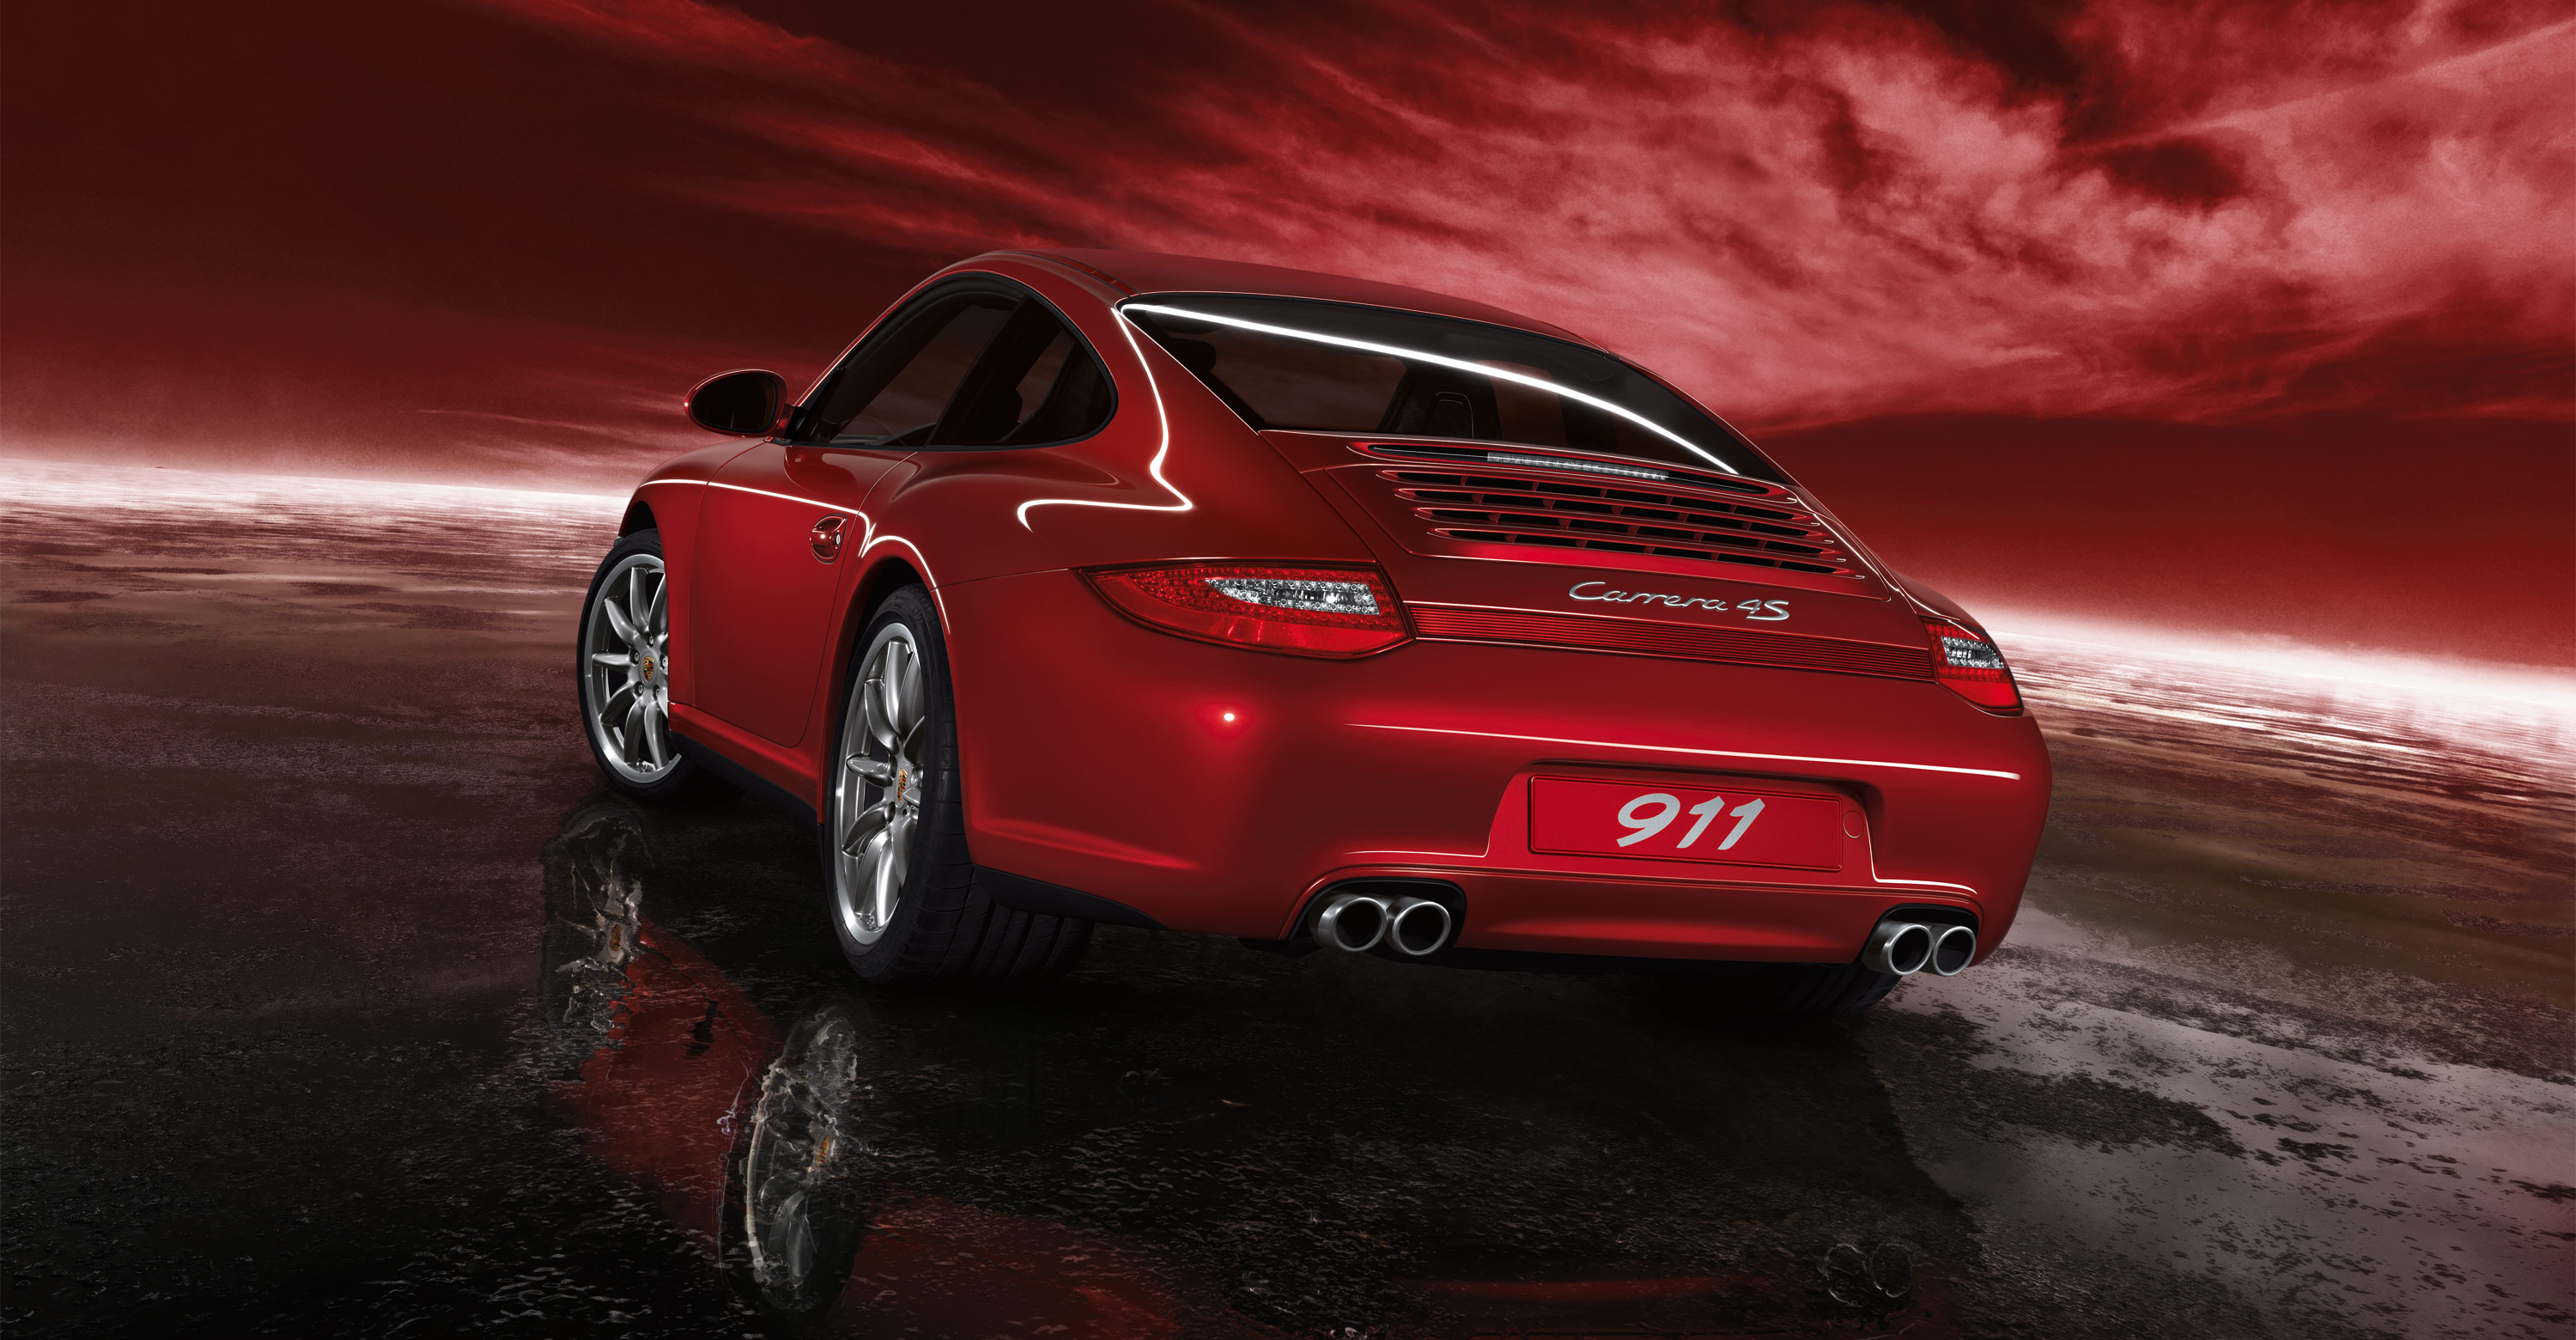 2011 red porsche 911 carrera 4s wallpapers